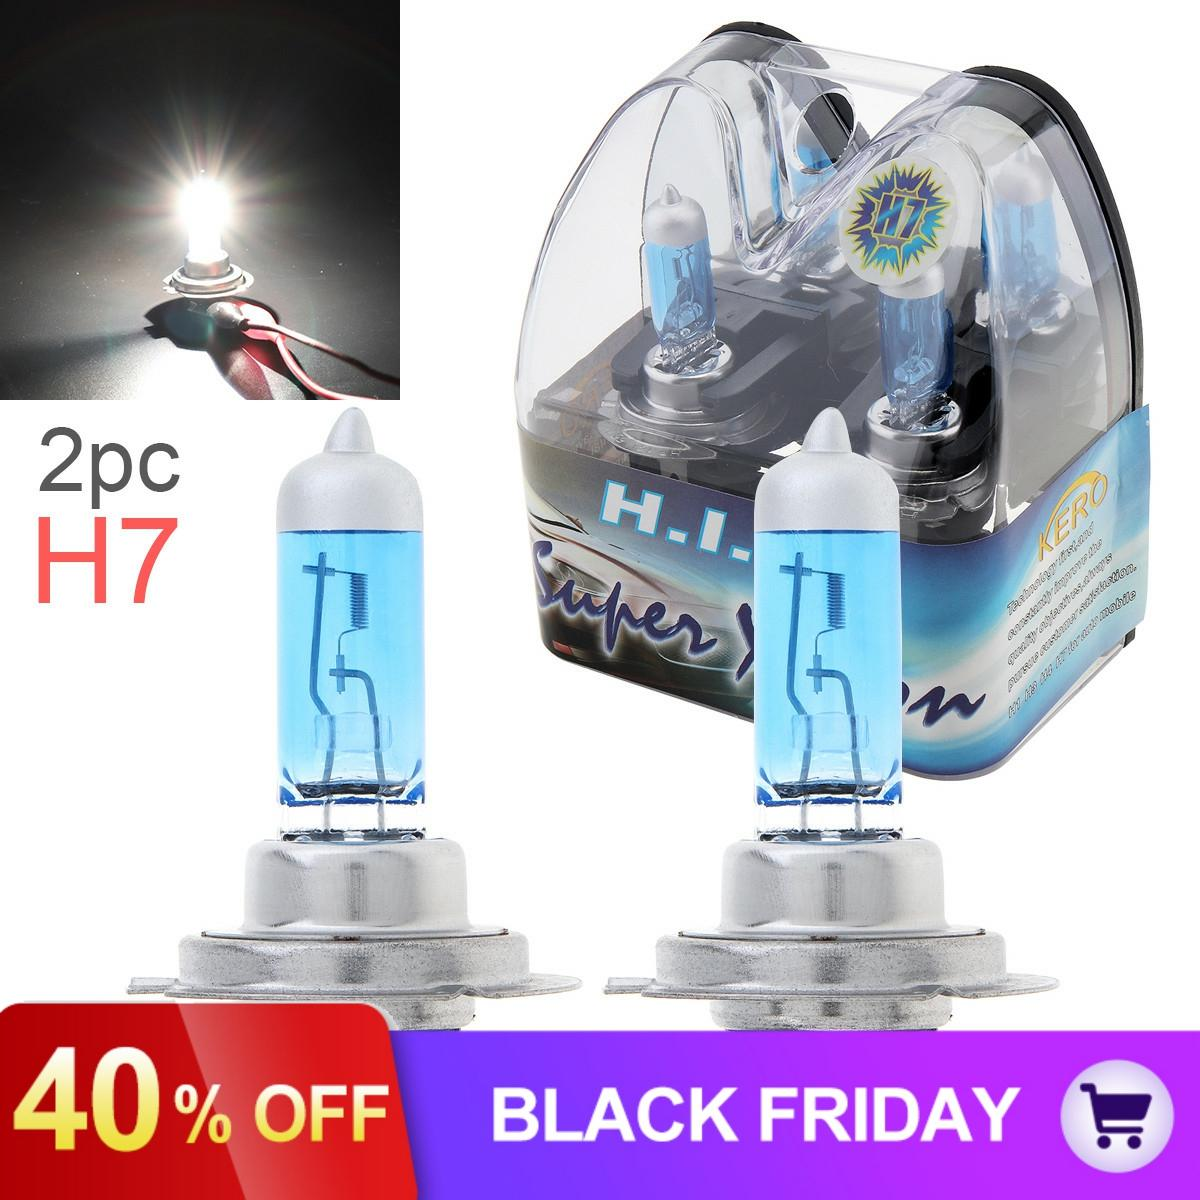 2pcs 12V H7 55W 6000K White Light Super Bright Car Xenon Halogen Lamp Auto Front Headlight Car Fog Light Bulb